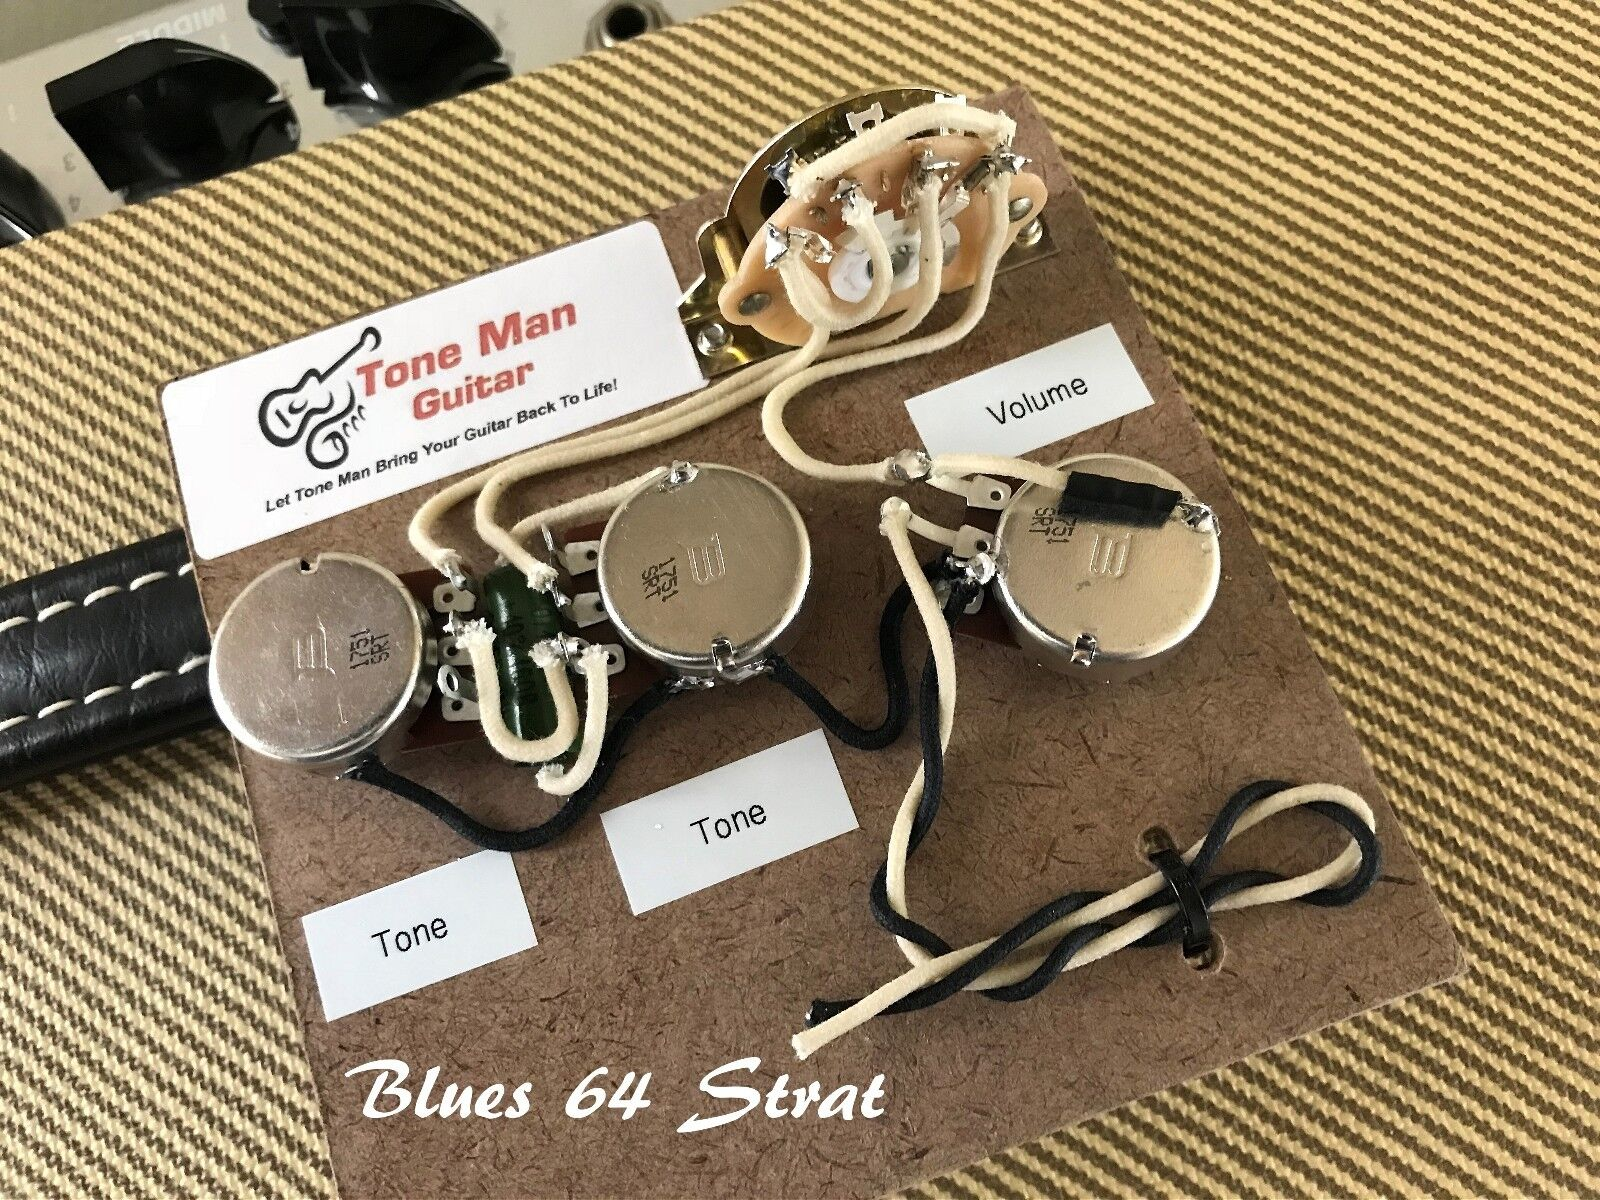 The Blues 64 Sound Strat Prewired Wiring Kit For Fender Stratocaster Pre Wired Les Paul Harness 1 Of 7free Shipping See More